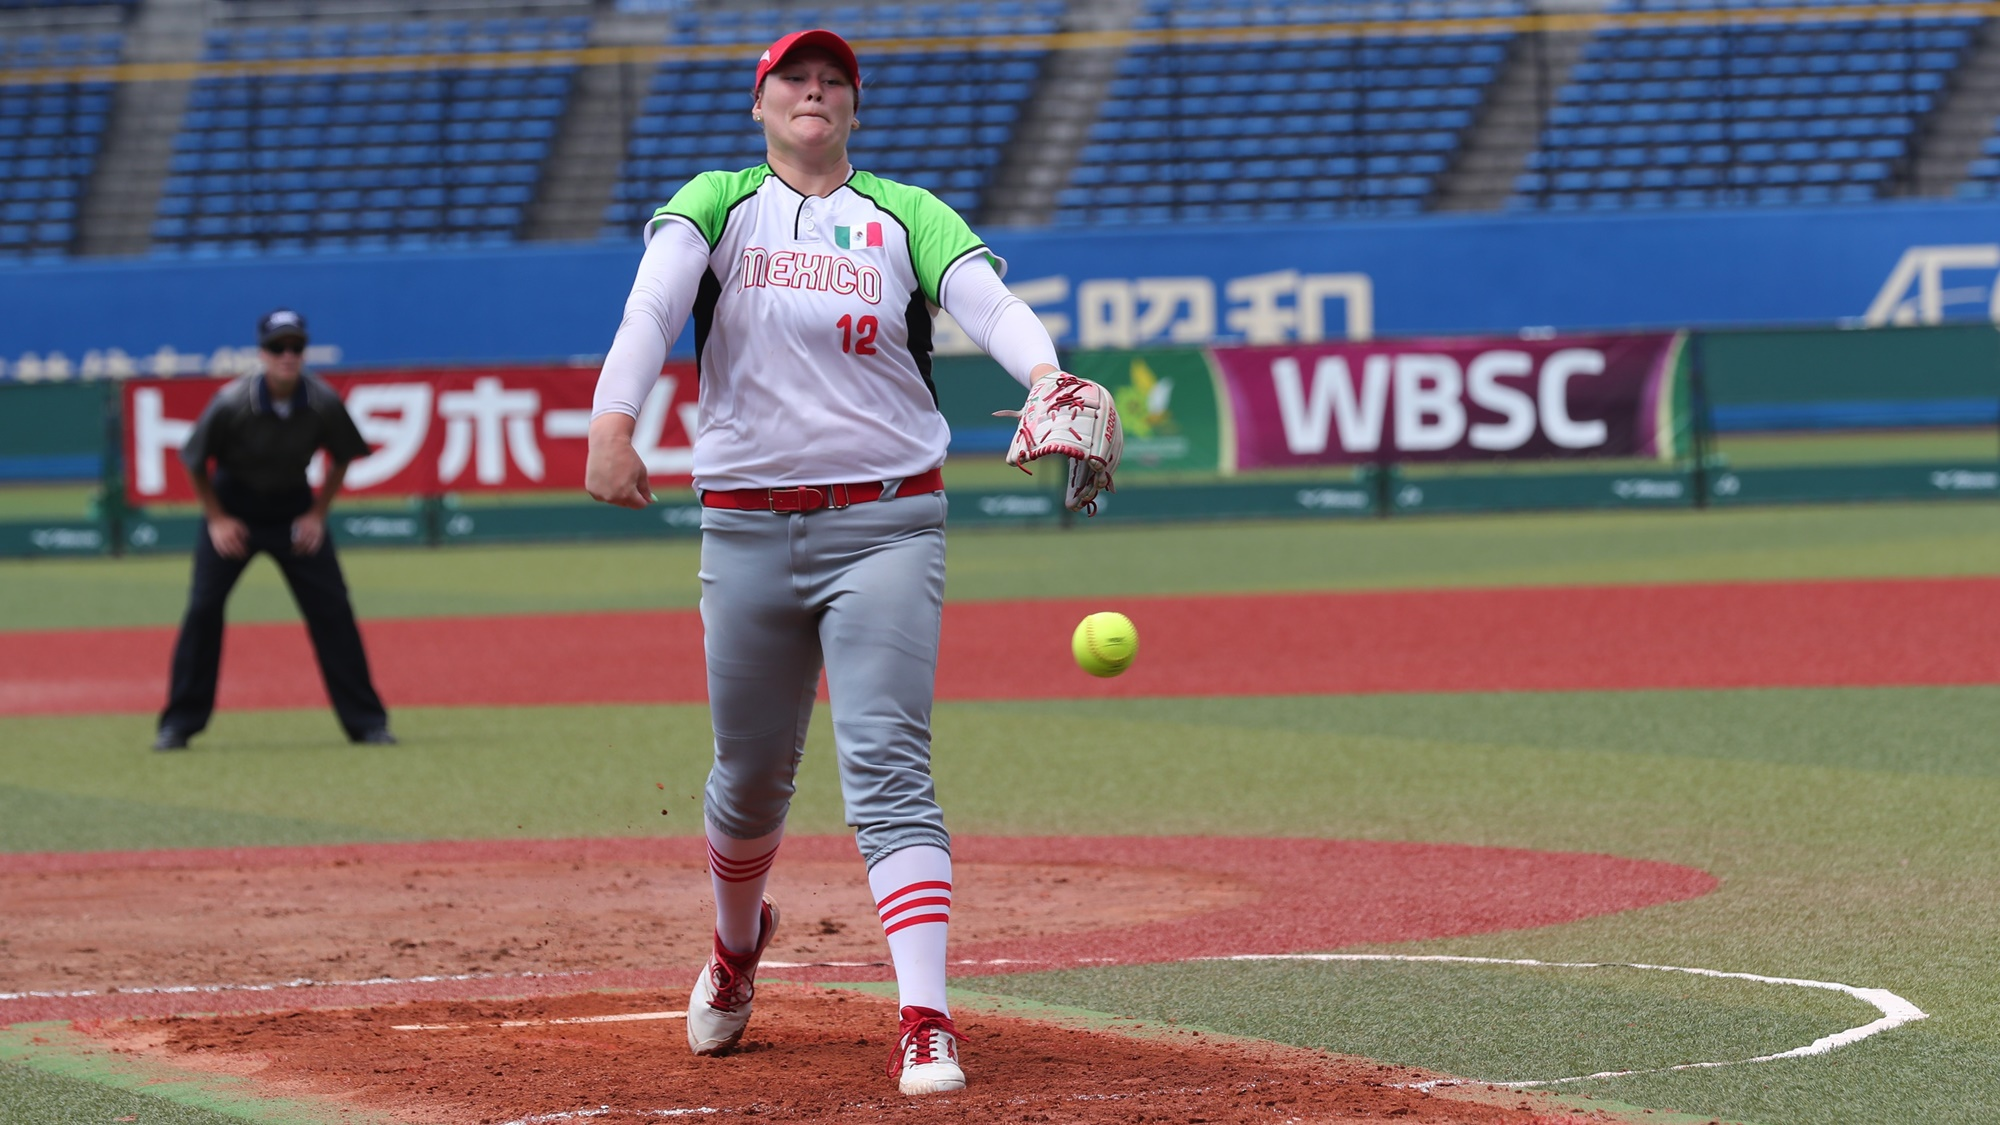 Dallas Escobedo pitched another gem for Mexico: she went 9 innings, struck out 16